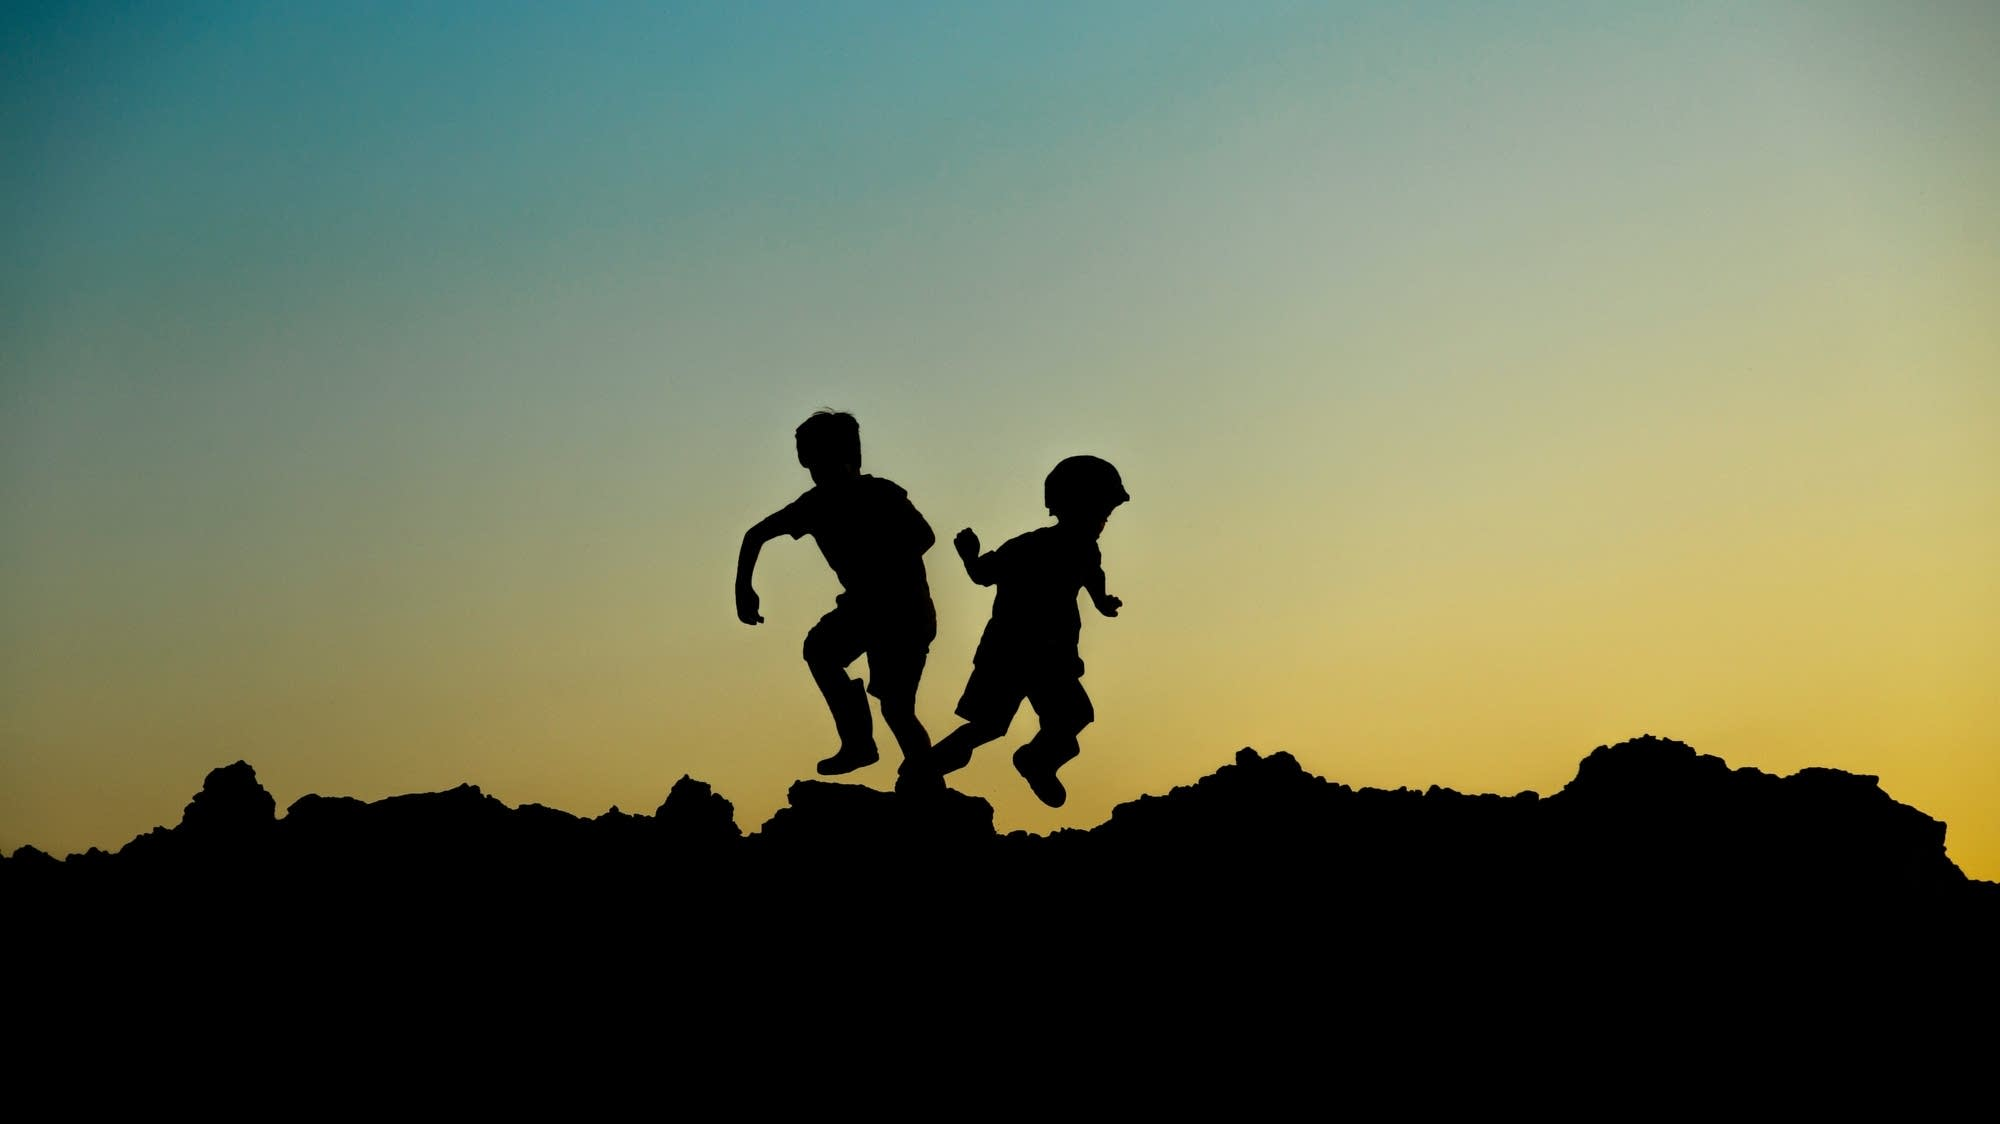 Silhouette of two children